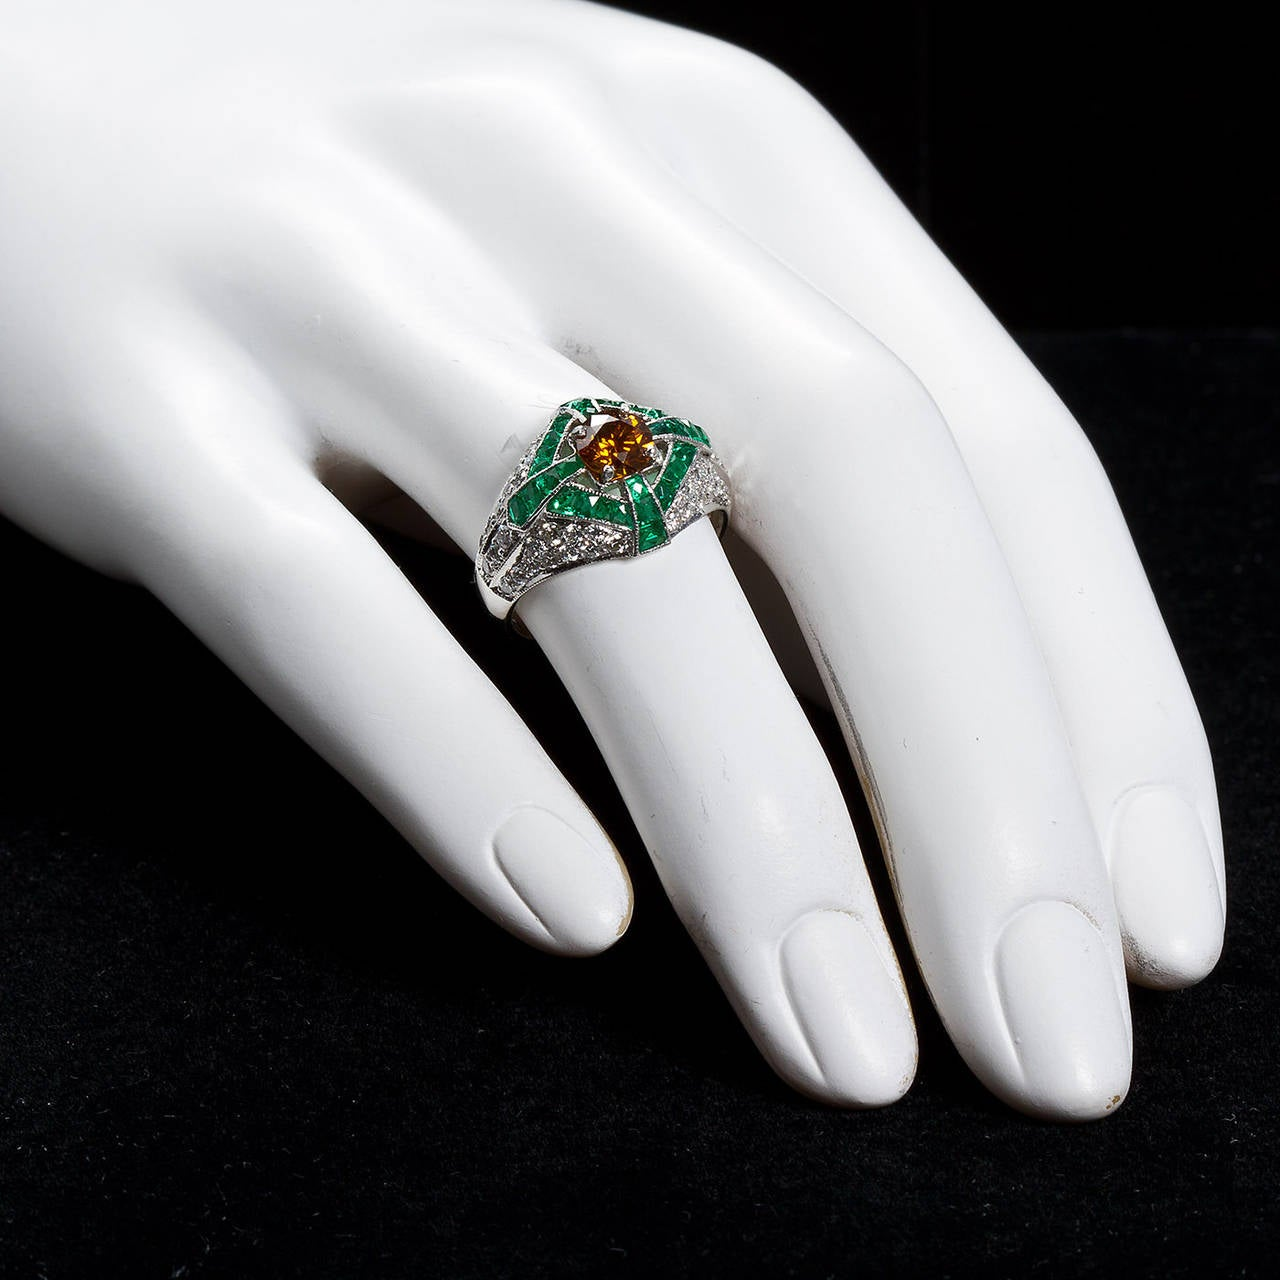 Art Deco Natural Fancy Vivid Orange Yellow Diamond Dome Ring GIA Certified For Sale